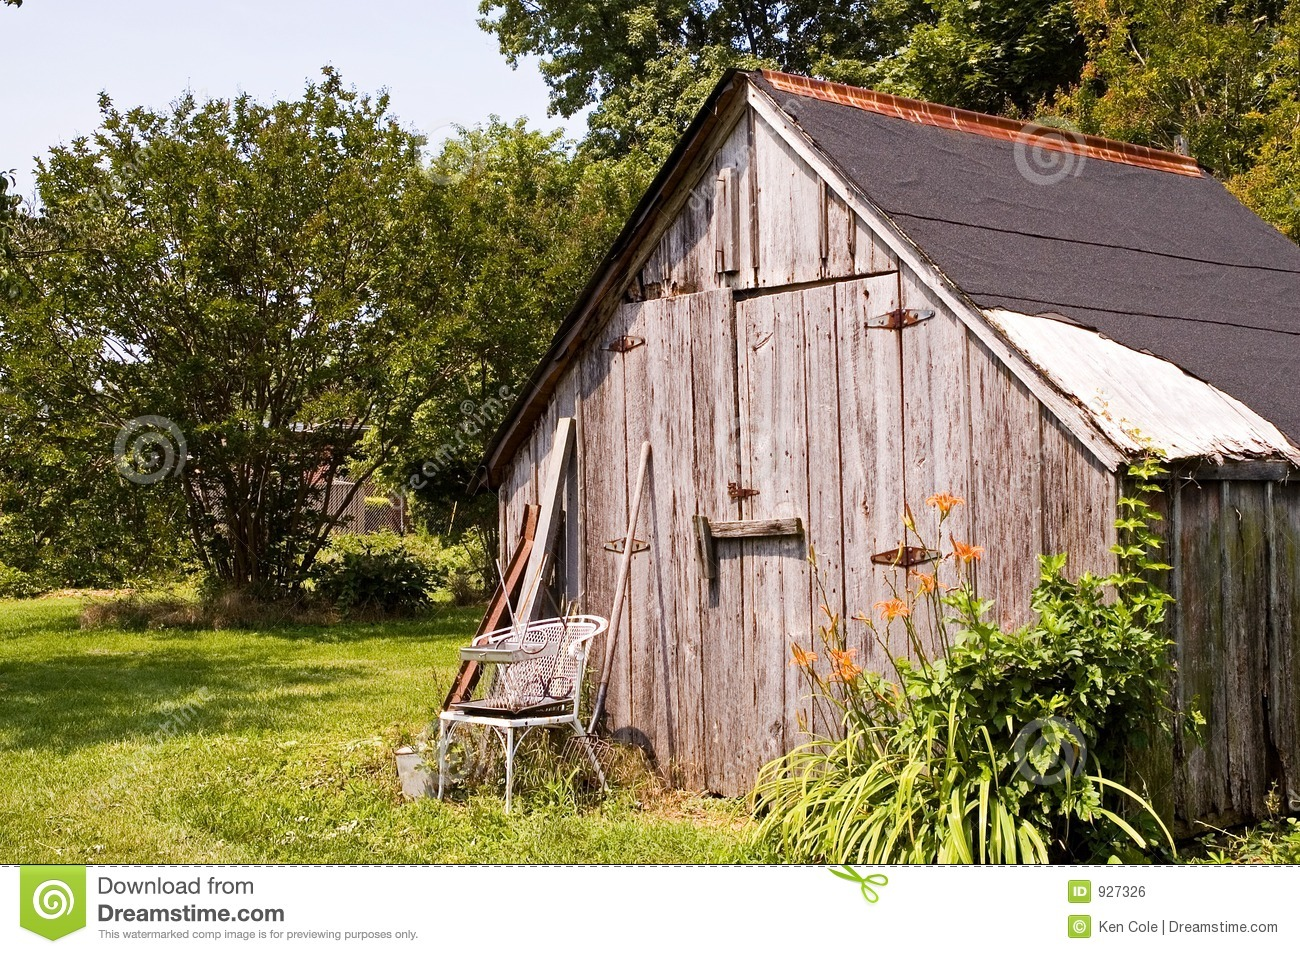 Backyard Tool Storage Shed Royalty Free Stock Image   Image  927326